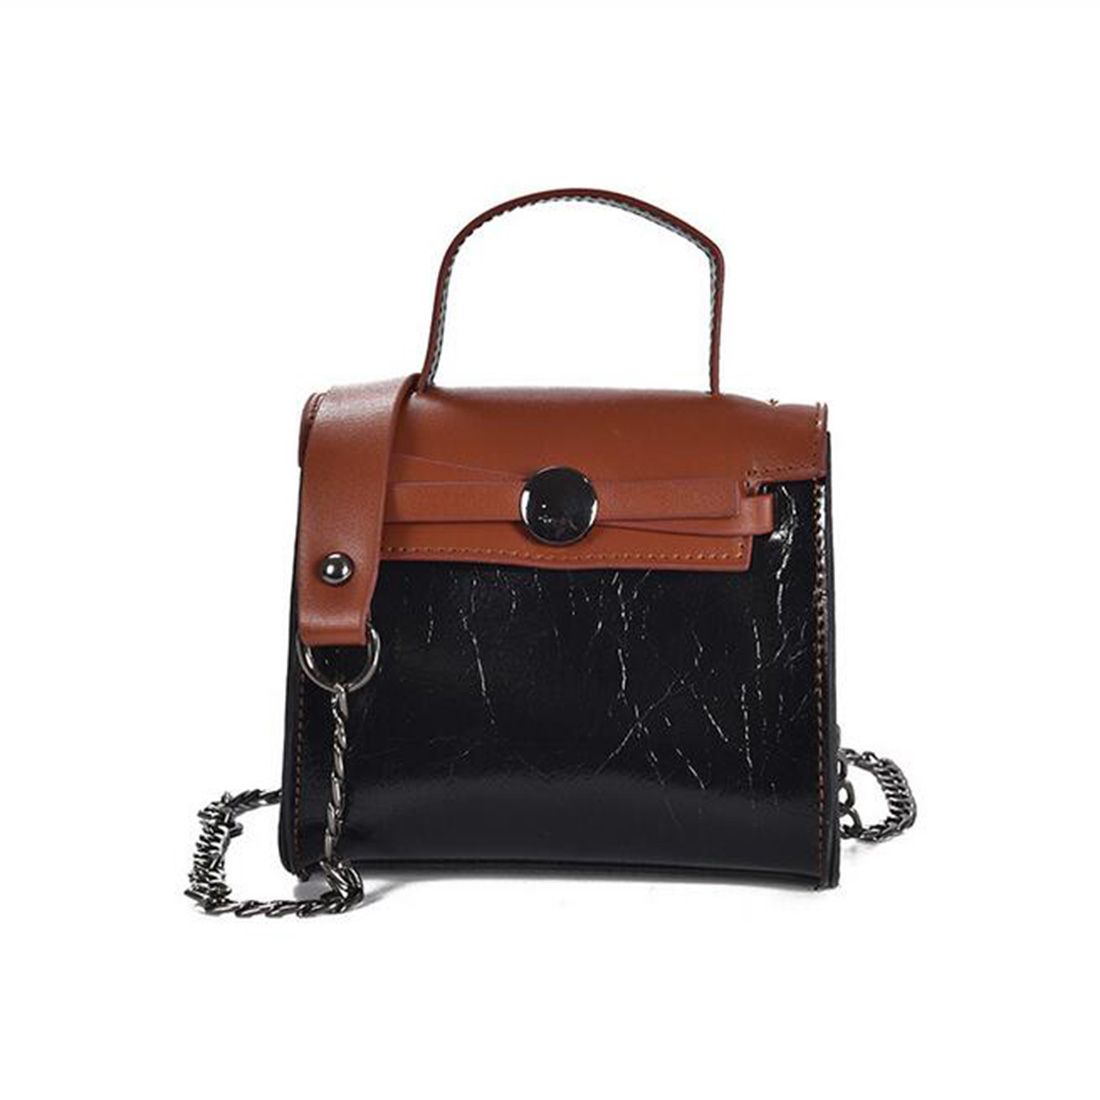 famous designer handbags Bags Women Leather Handbag With Chain Strap women messe